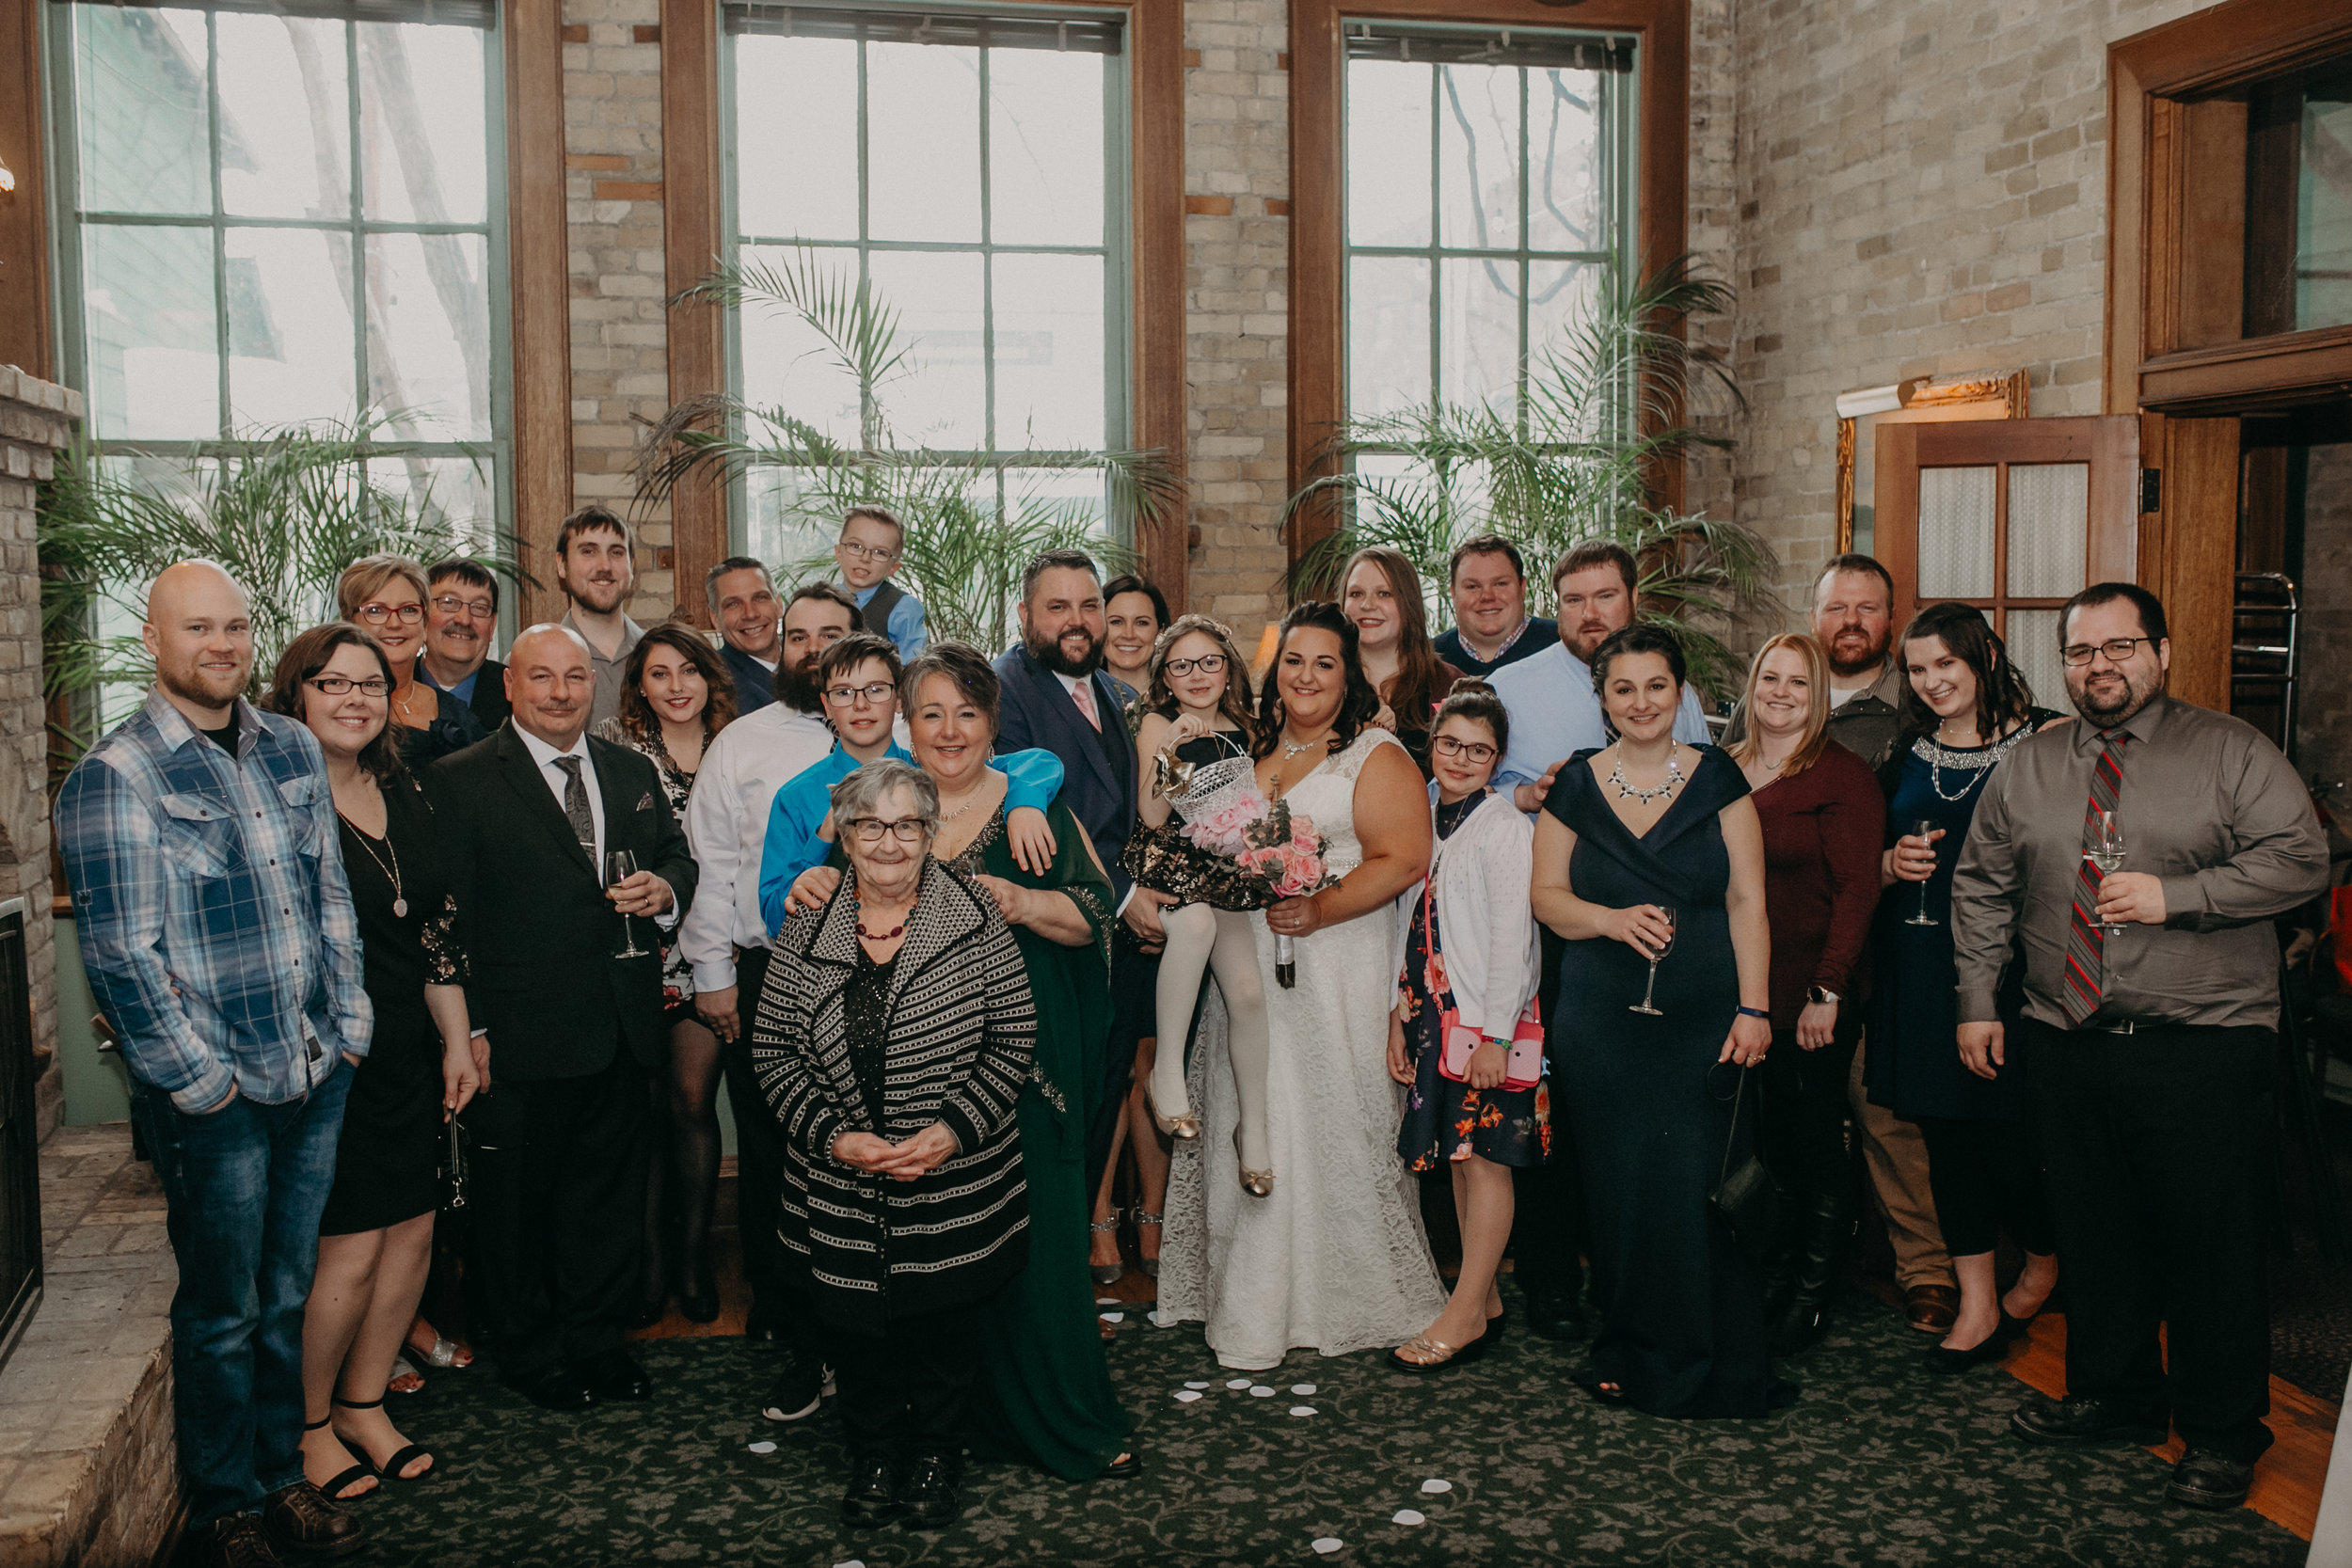 Intimate_Wedding_St_Paul_MN_WA_Frost_Sweeneys_Andrea_Wagner_Photography (70 of 99).jpg